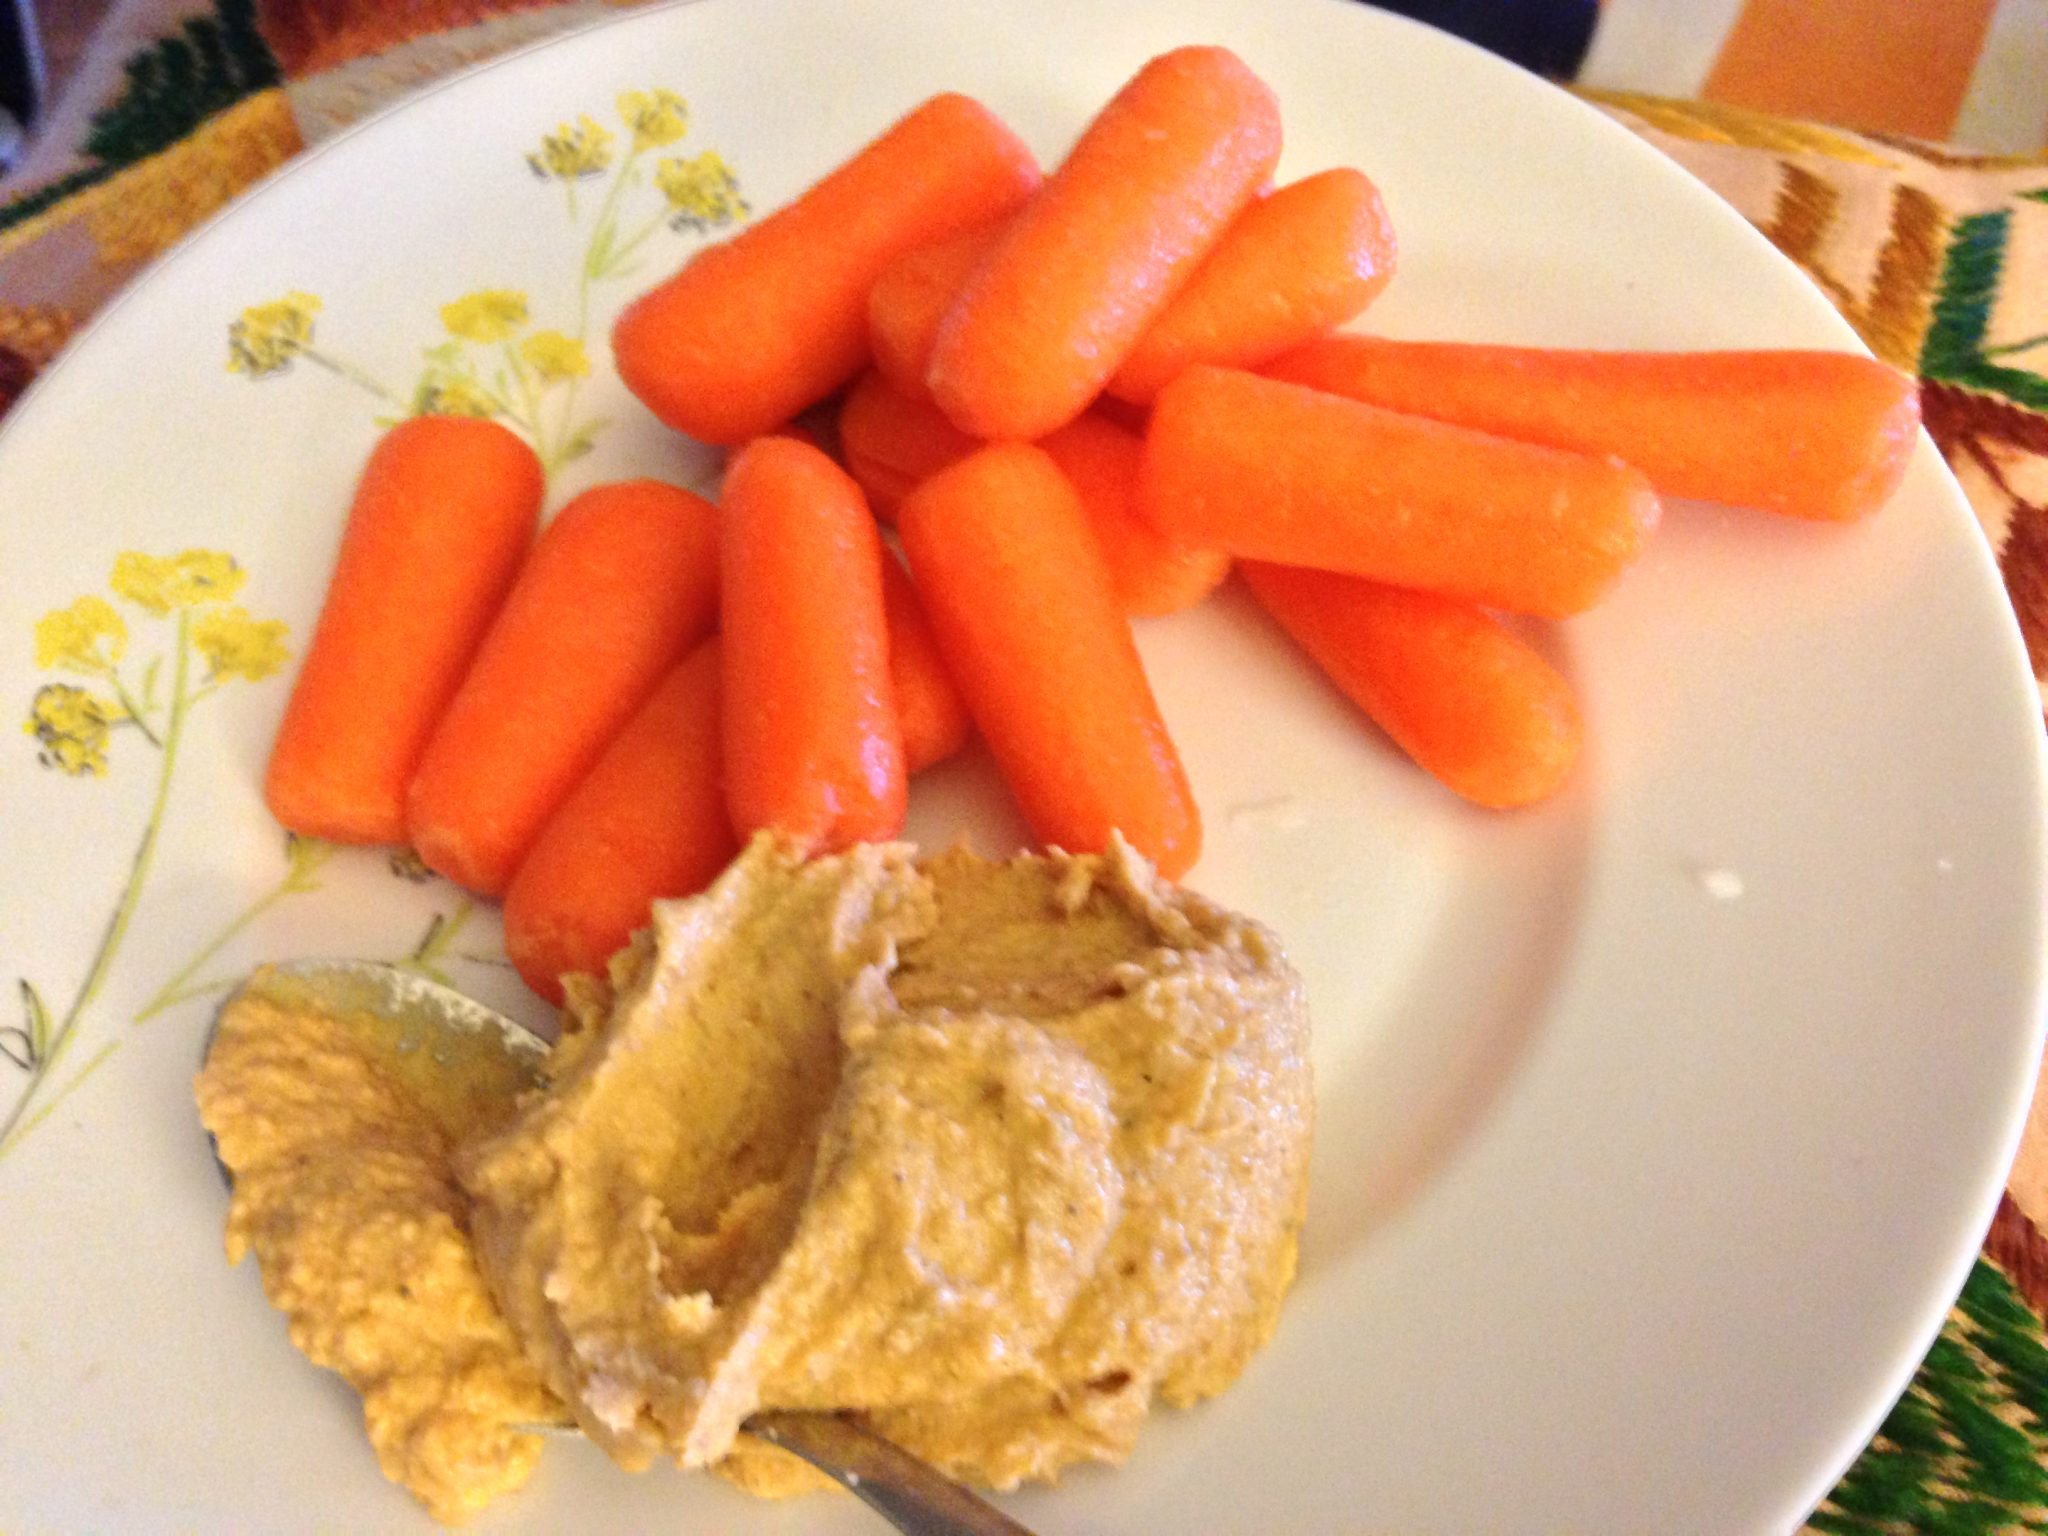 Great snack: Hummus and Carrots